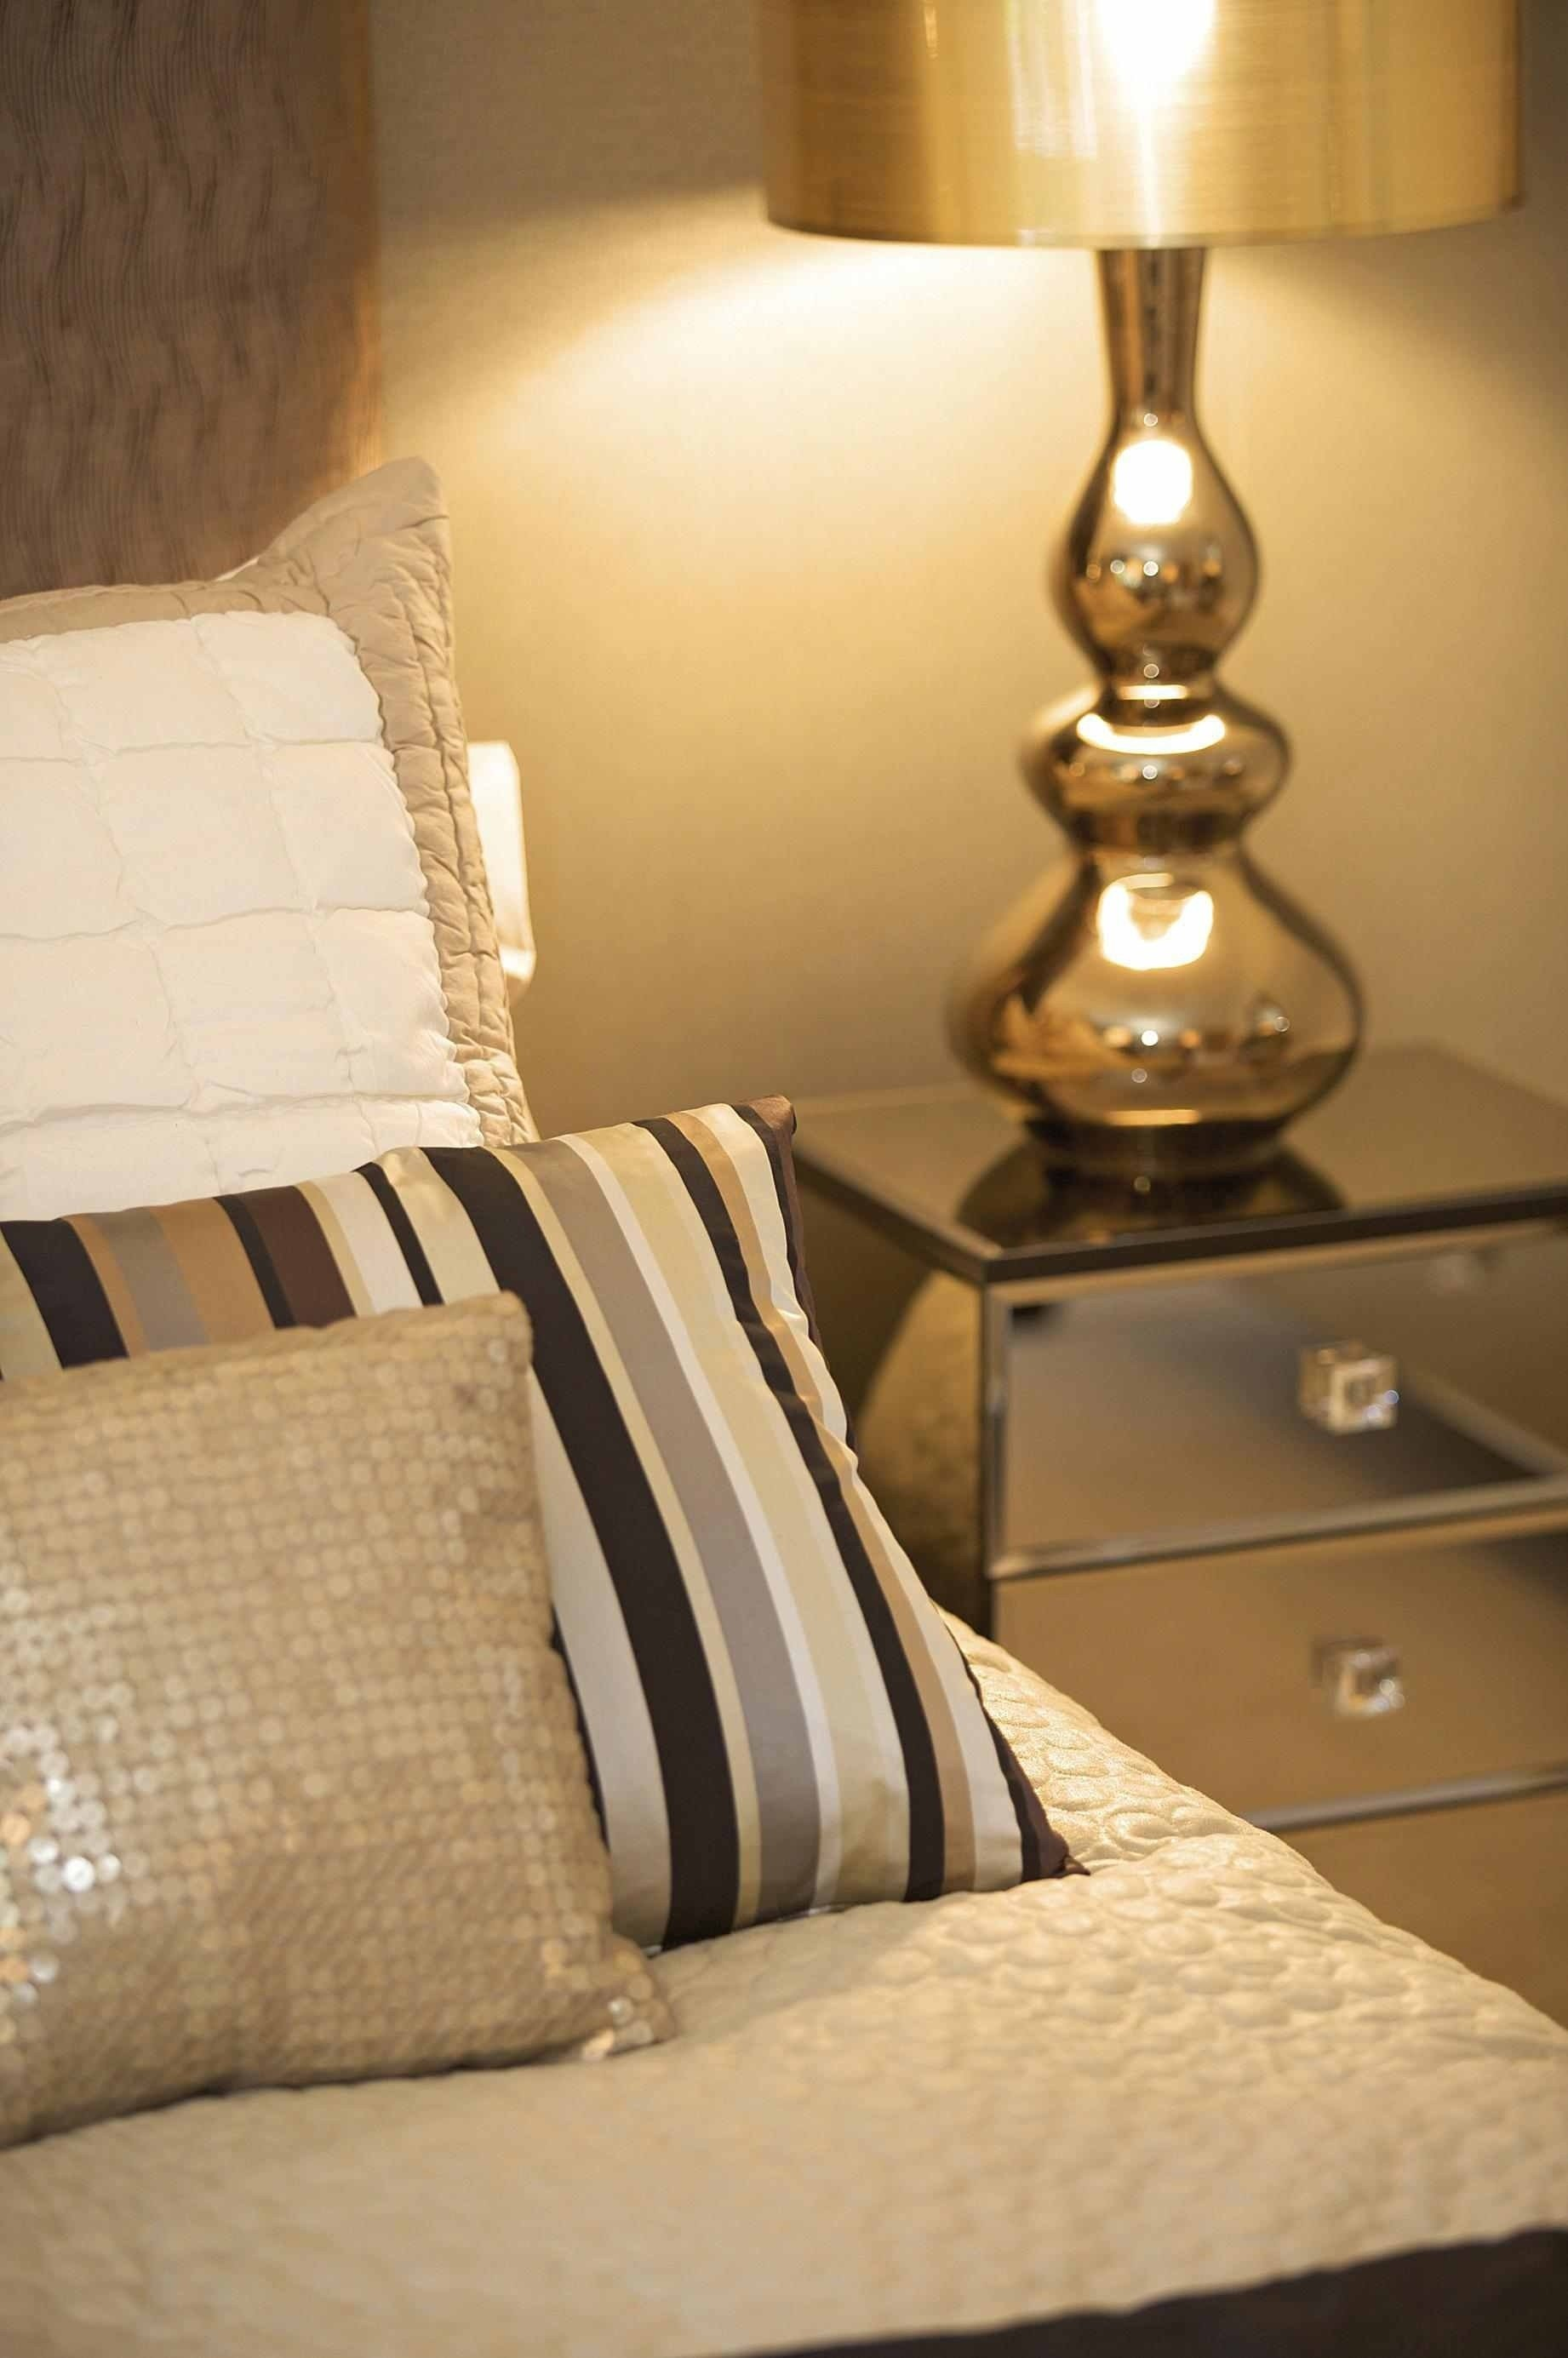 Best 15 Cool Fun Ideas To Spice Up The Bedroom Trend Idées De With Pictures